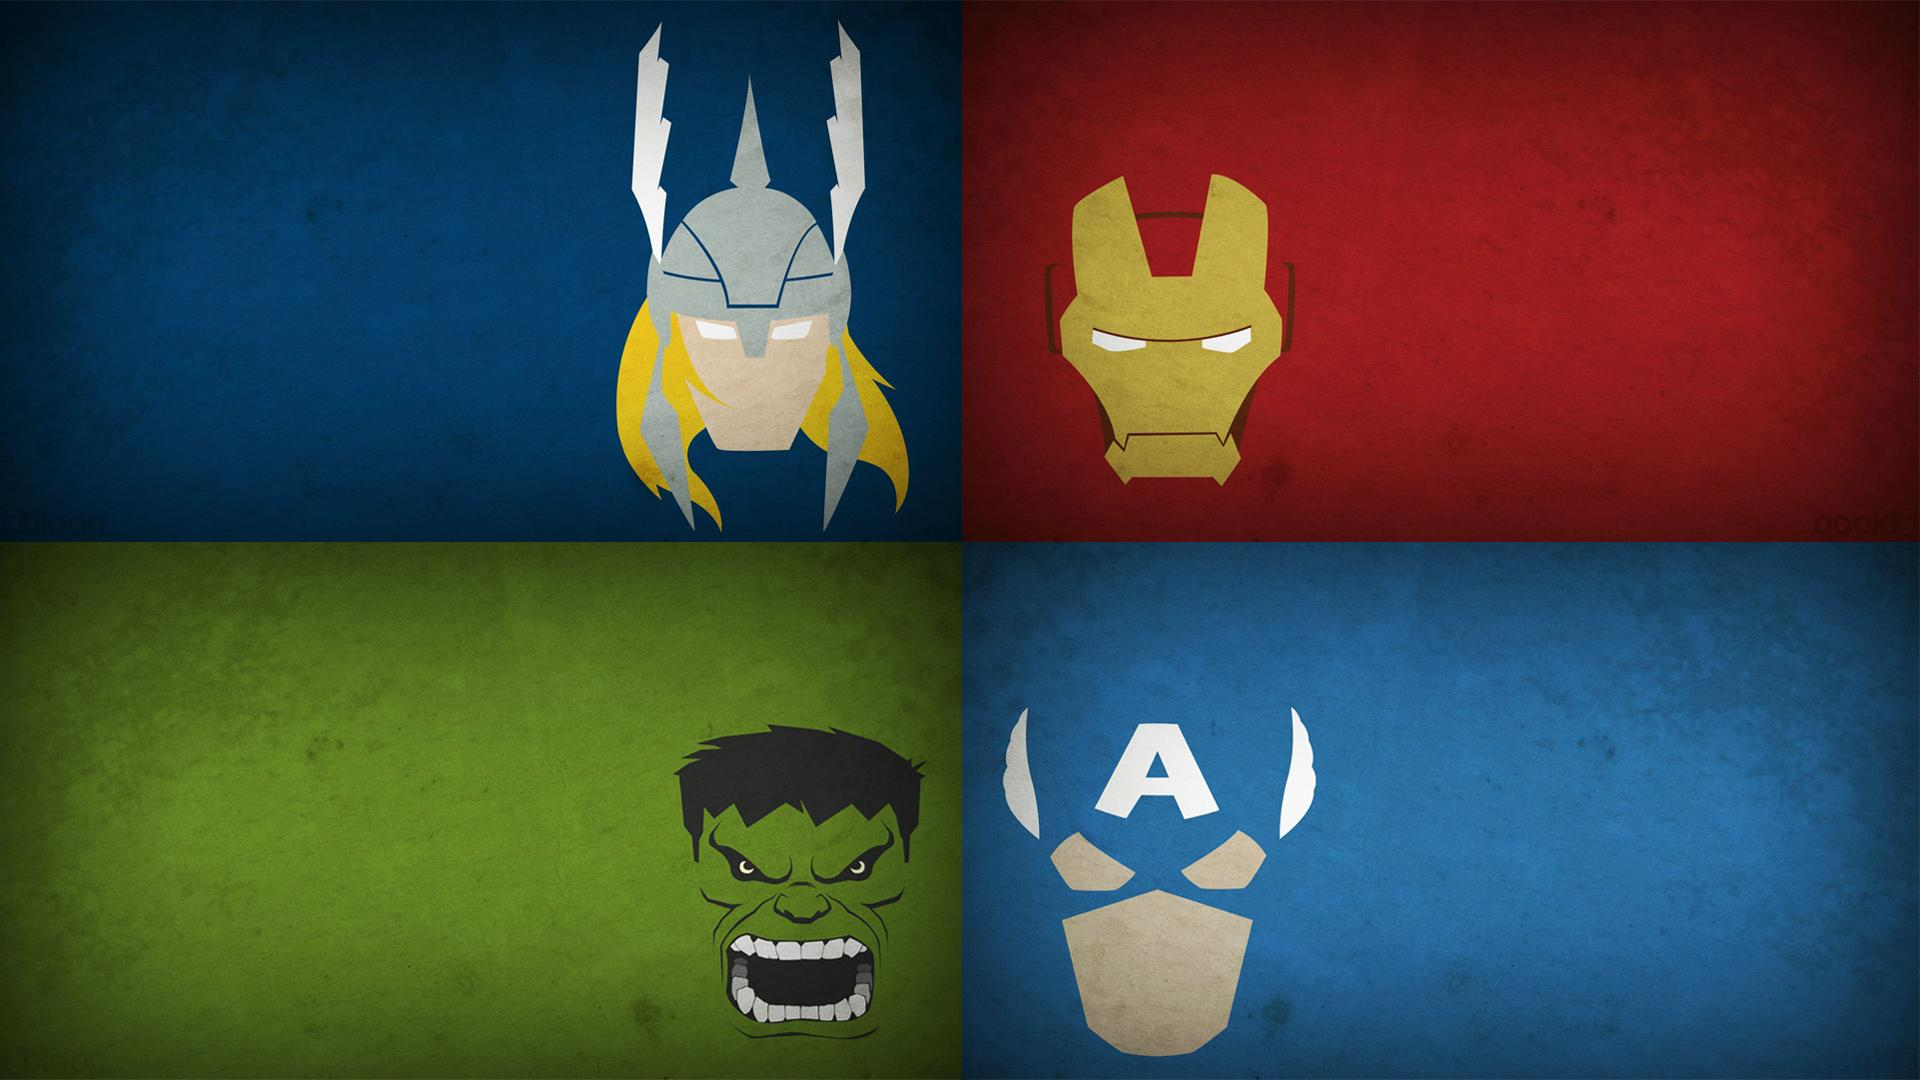 Avengers Wallpapers Full Hd Avenger Wallpaper Phone Cartoon 552668 Hd Wallpaper Backgrounds Download